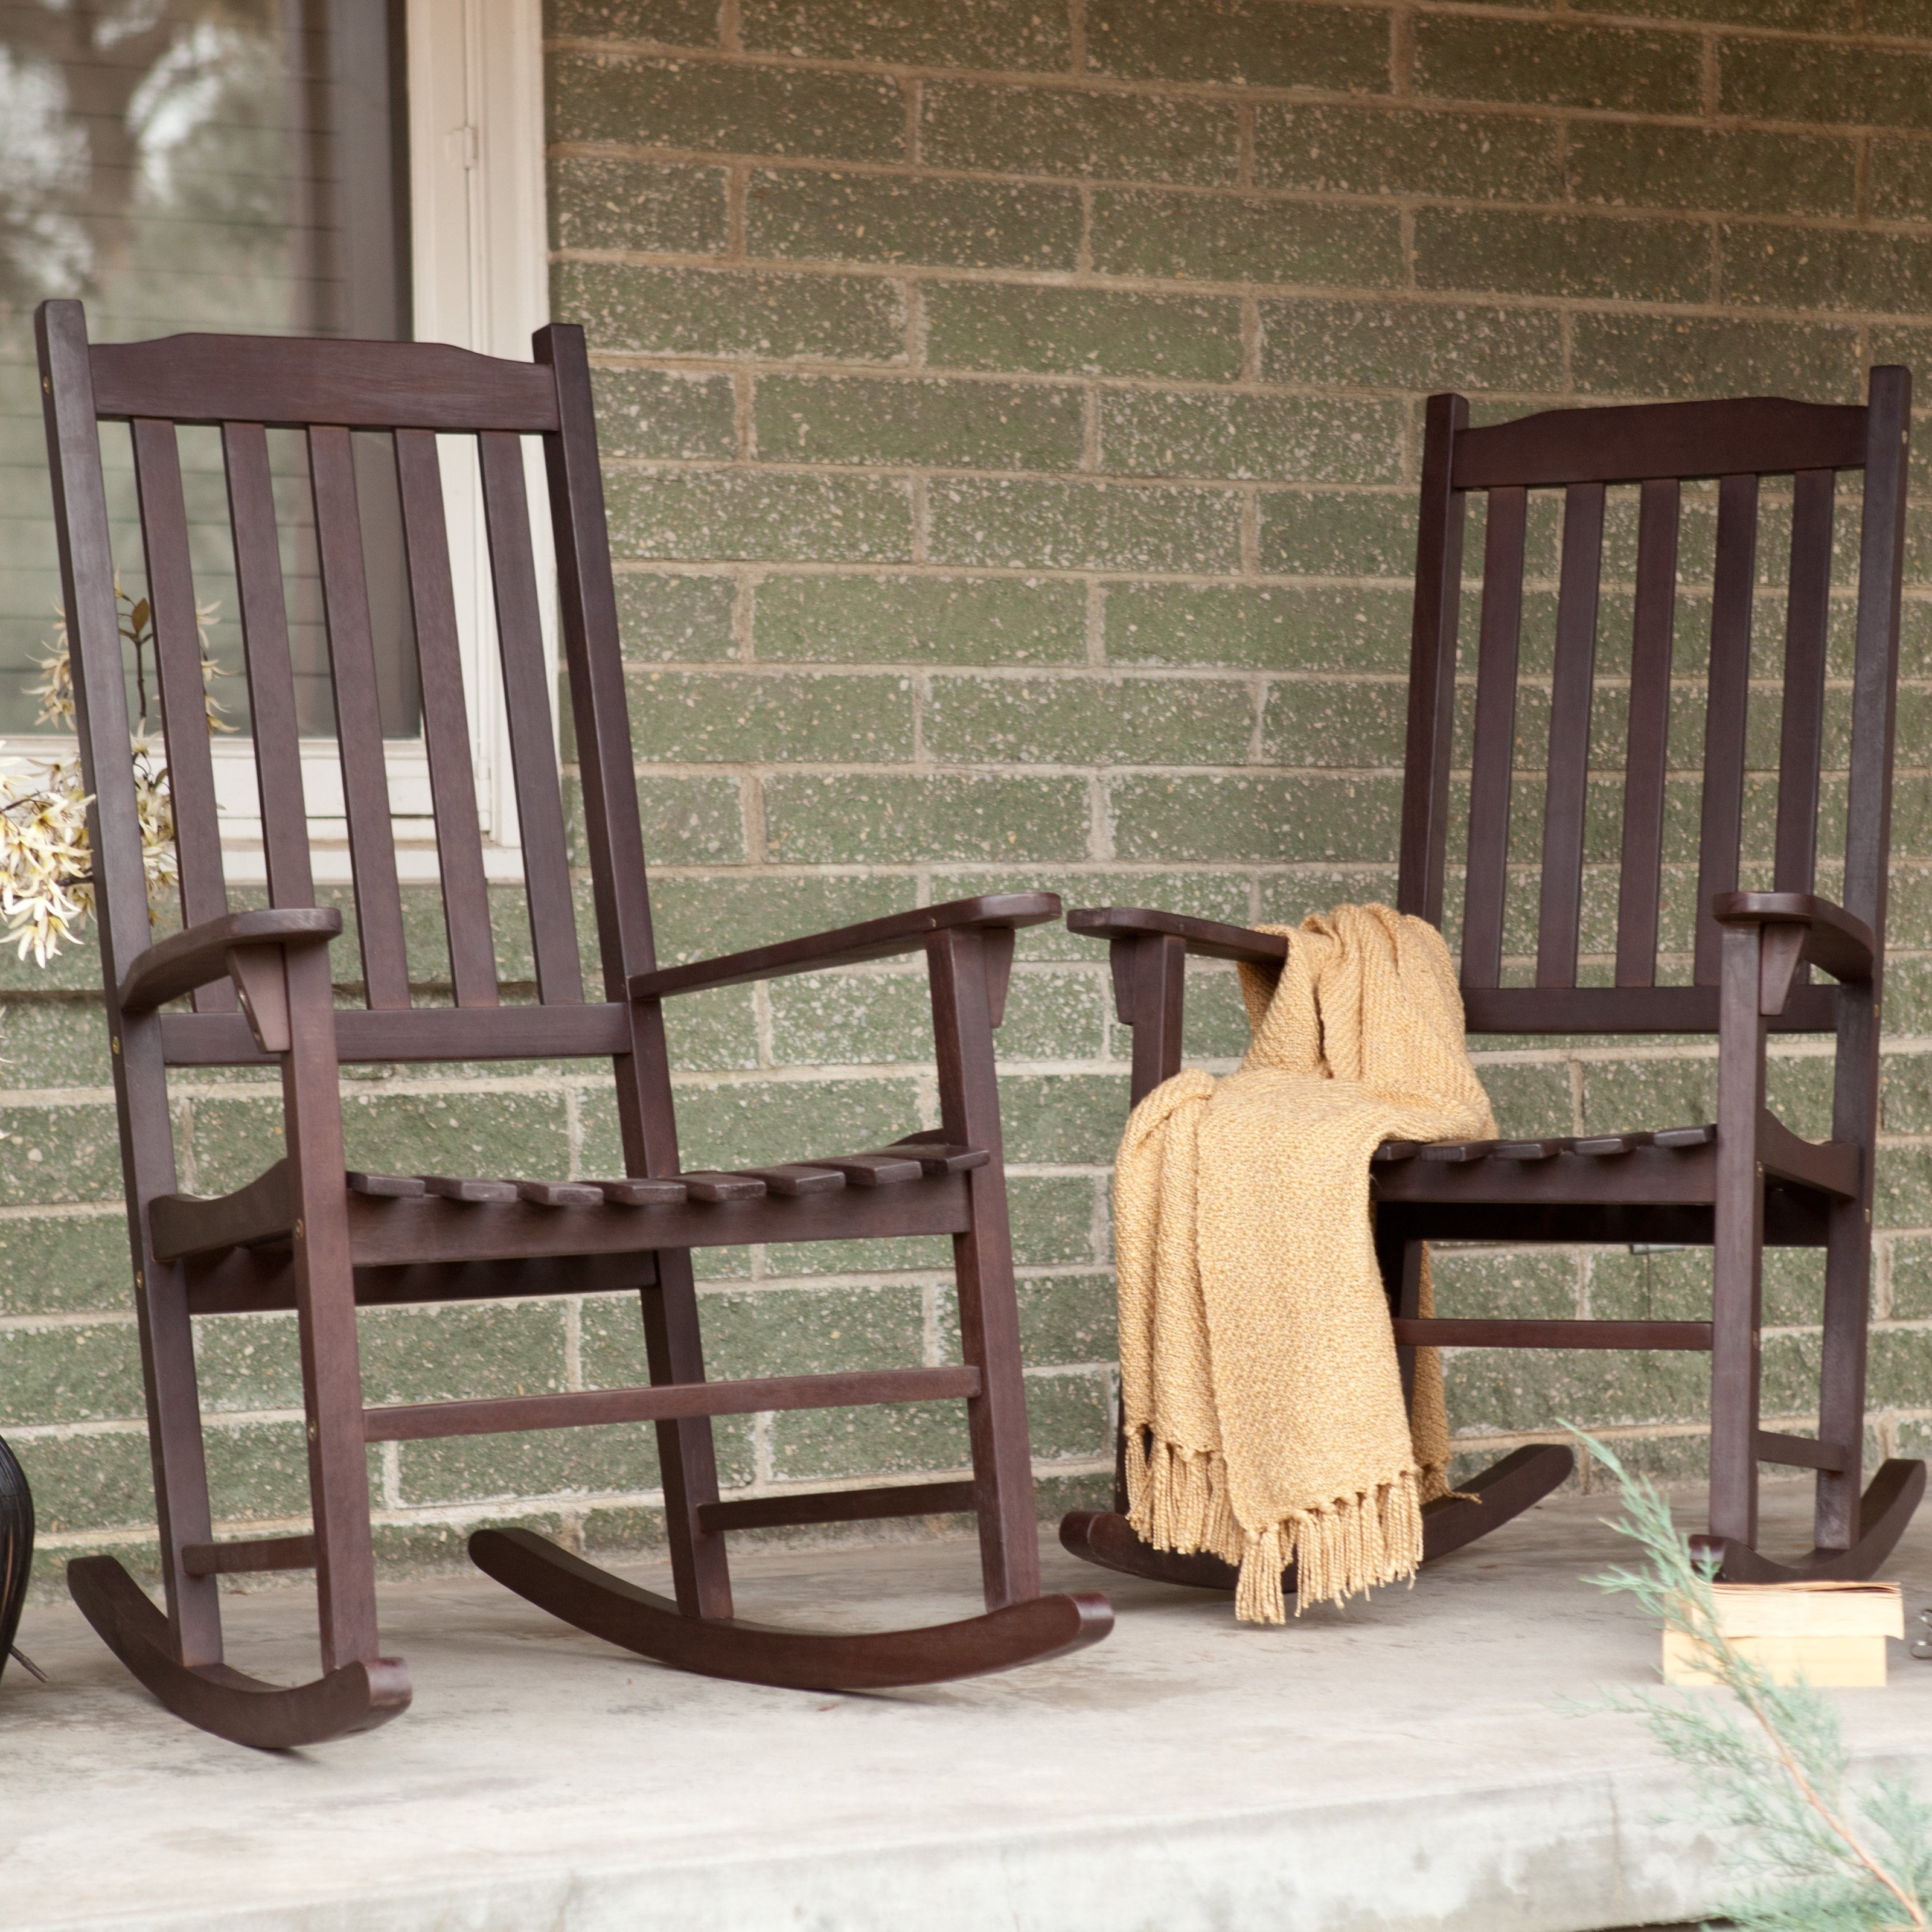 Outdoor Rocking Chairs With Favorite How To Choose Comfortable Outdoor Rocking Chairs – Yonohomedesign (View 11 of 20)